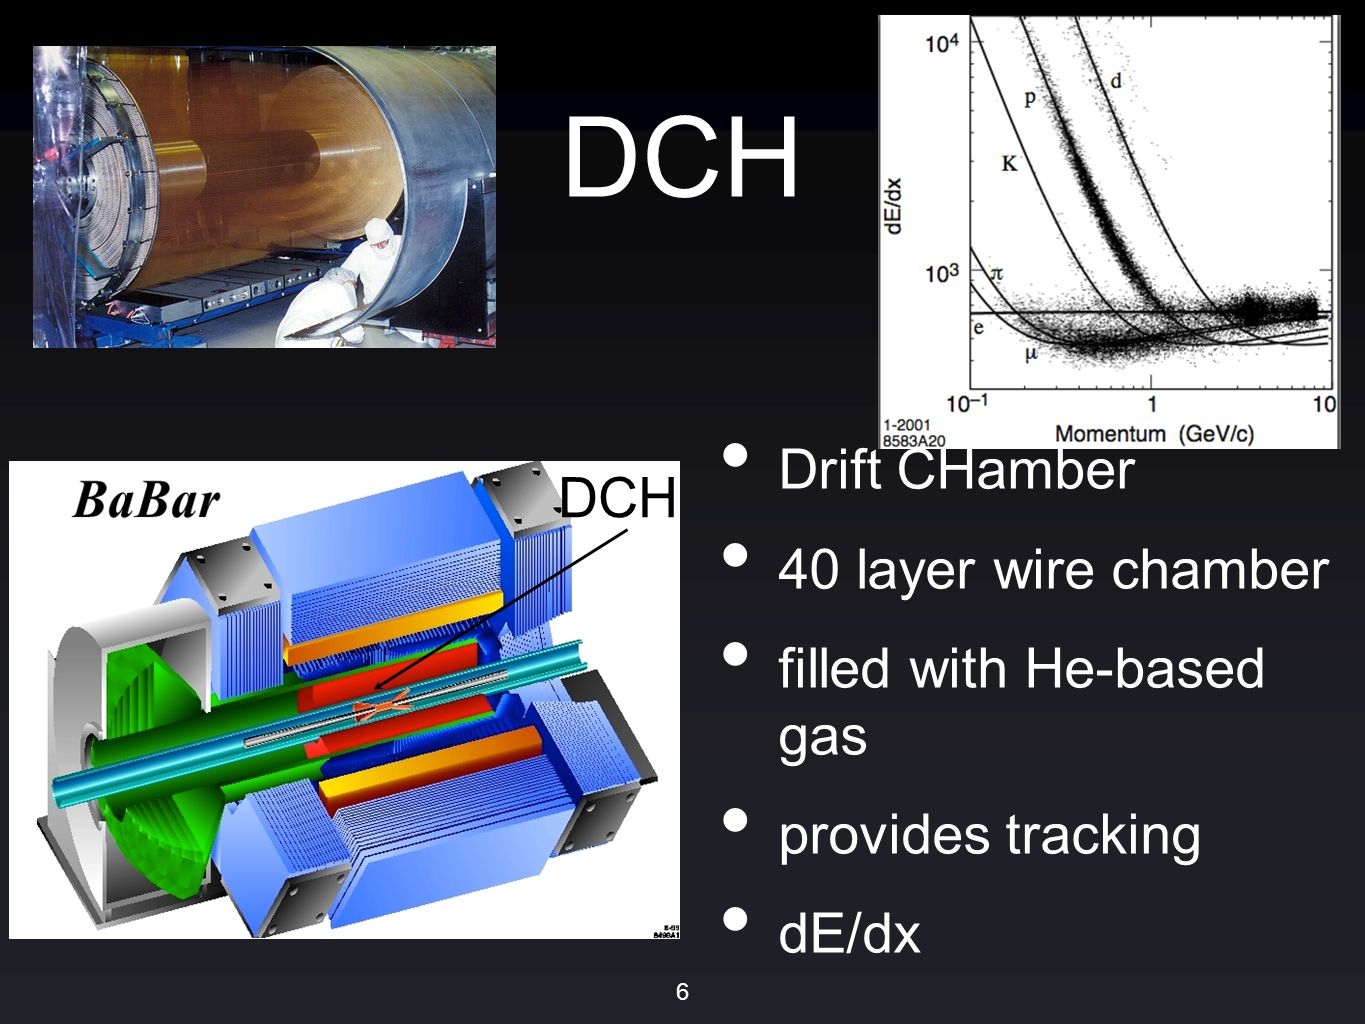 DCH Drift CHamber 40 layer wire chamber filled with He-based gas provides tracking dE/dx 6